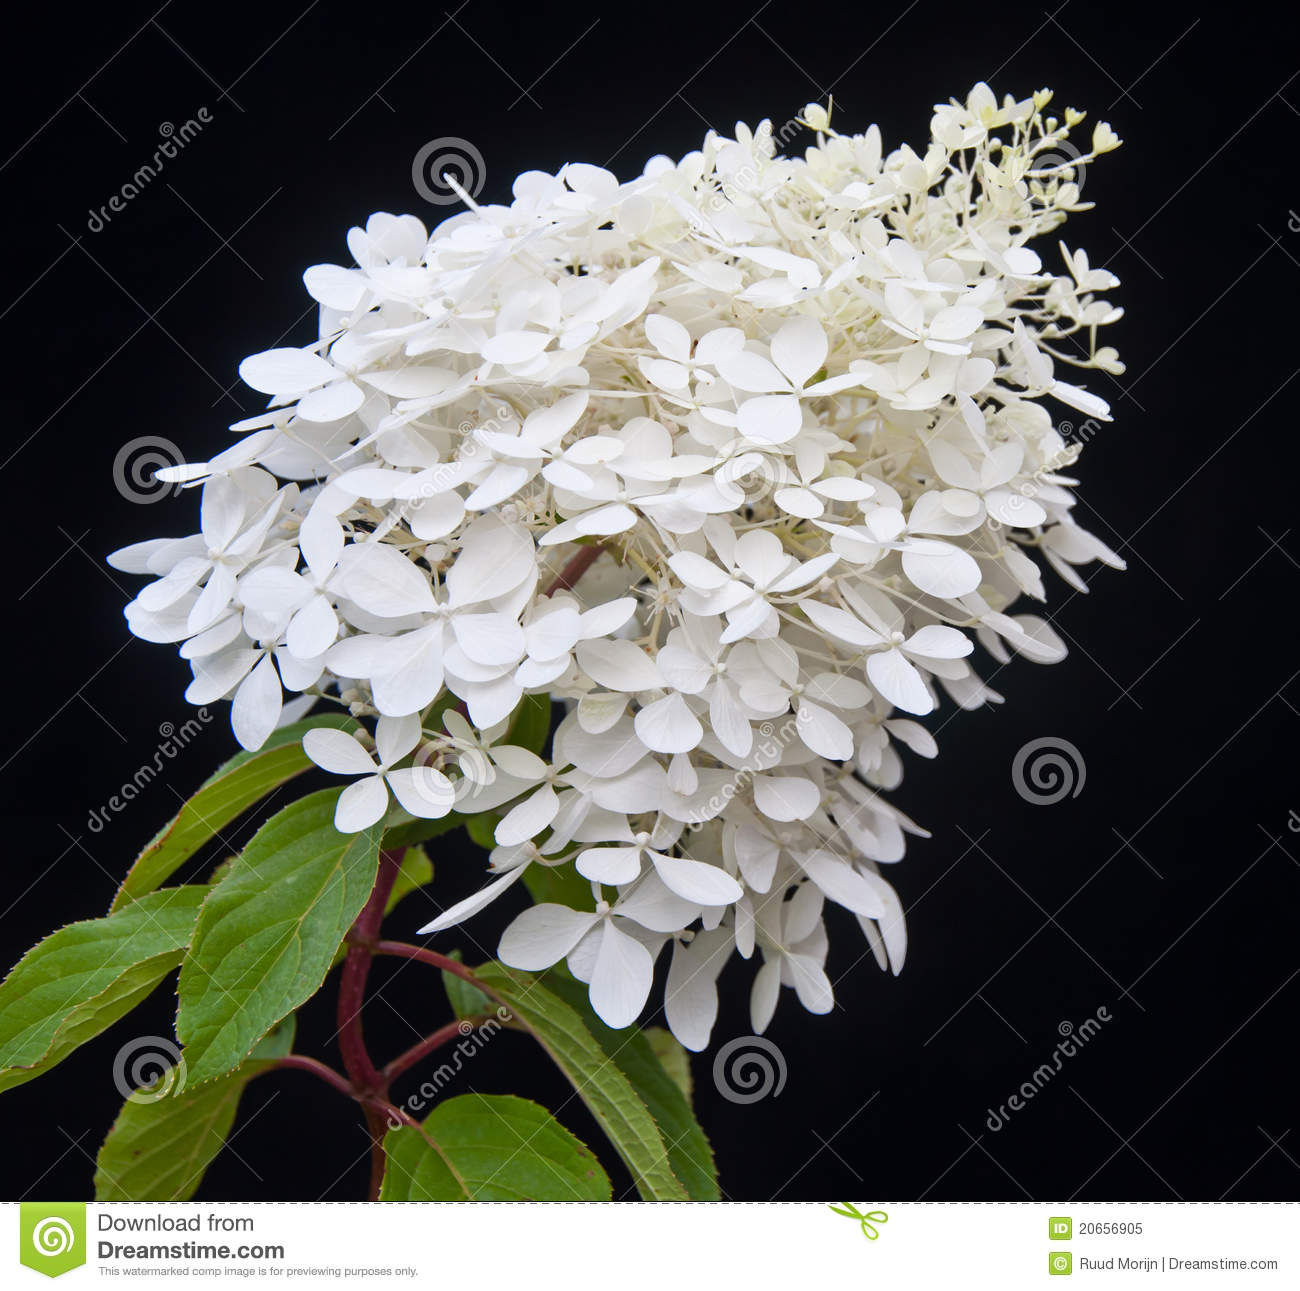 white flowering hydrangea paniculata phantom plant royalty free stock photo image 20656905. Black Bedroom Furniture Sets. Home Design Ideas